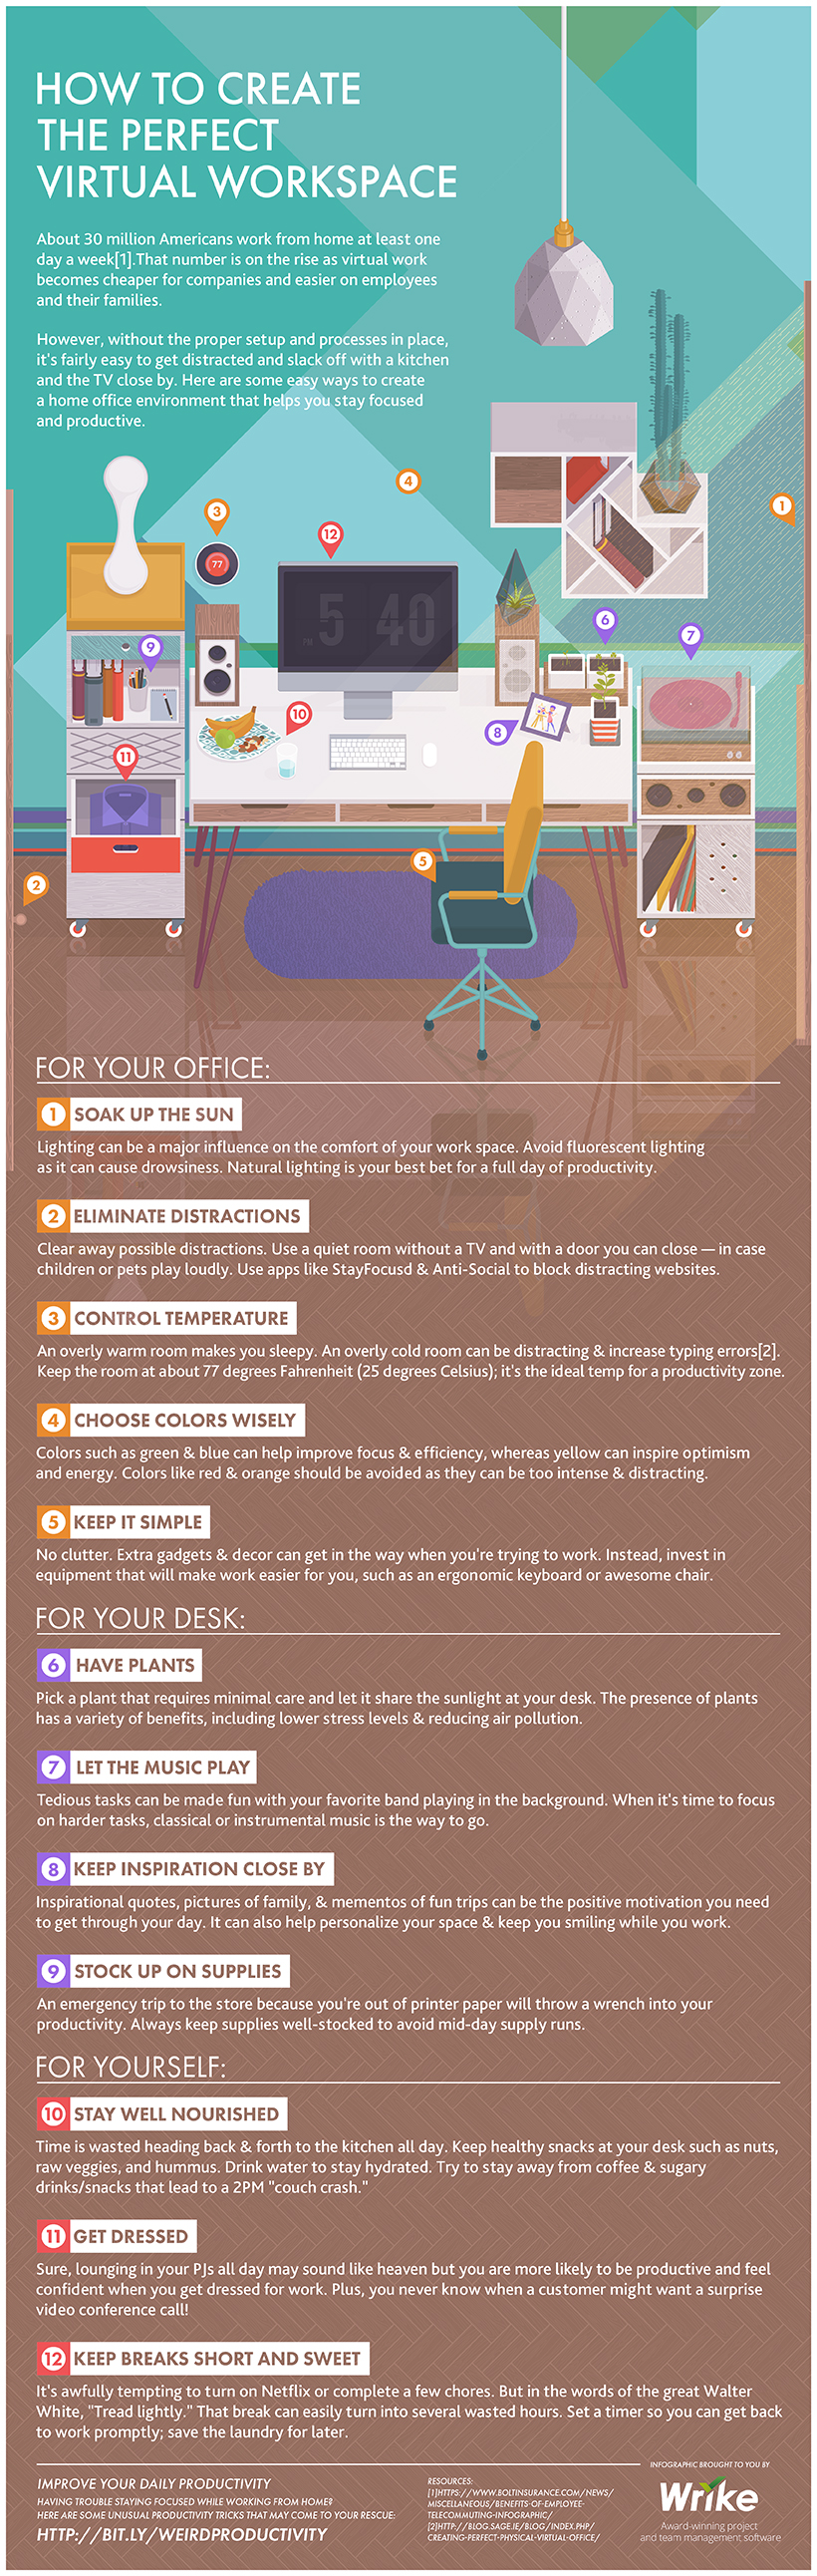 How to Create Your Perfect Remote Work Environment